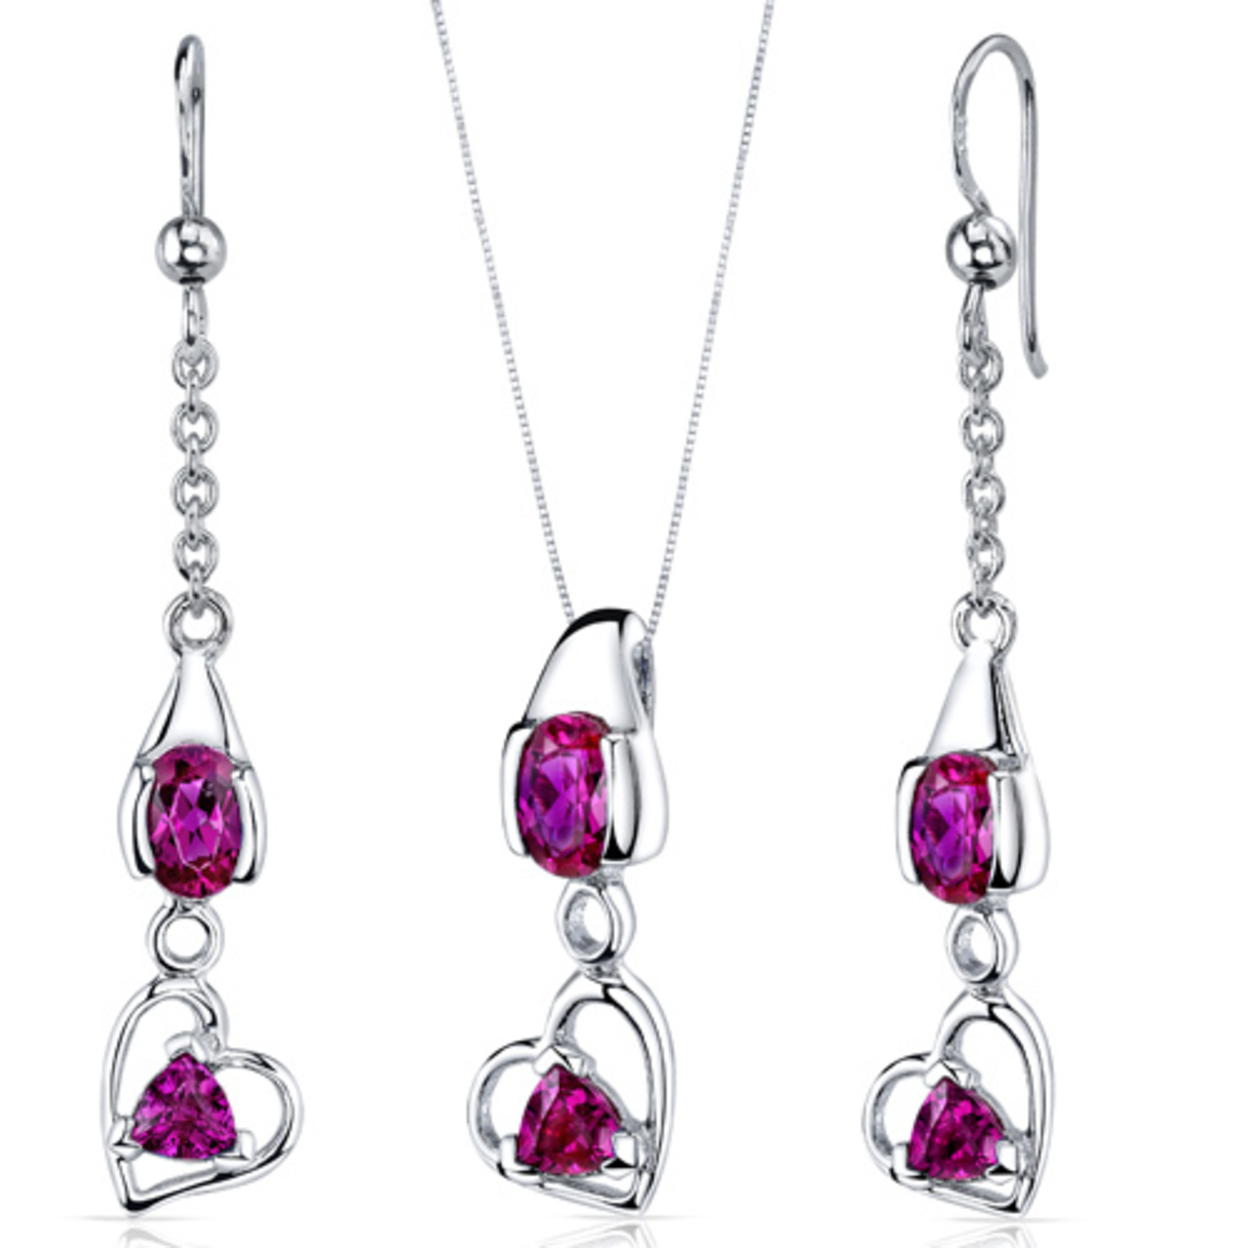 Heart Design 2.25 Carats Sterling Silver Ruby Pendant Earrings Set Style Ss3764